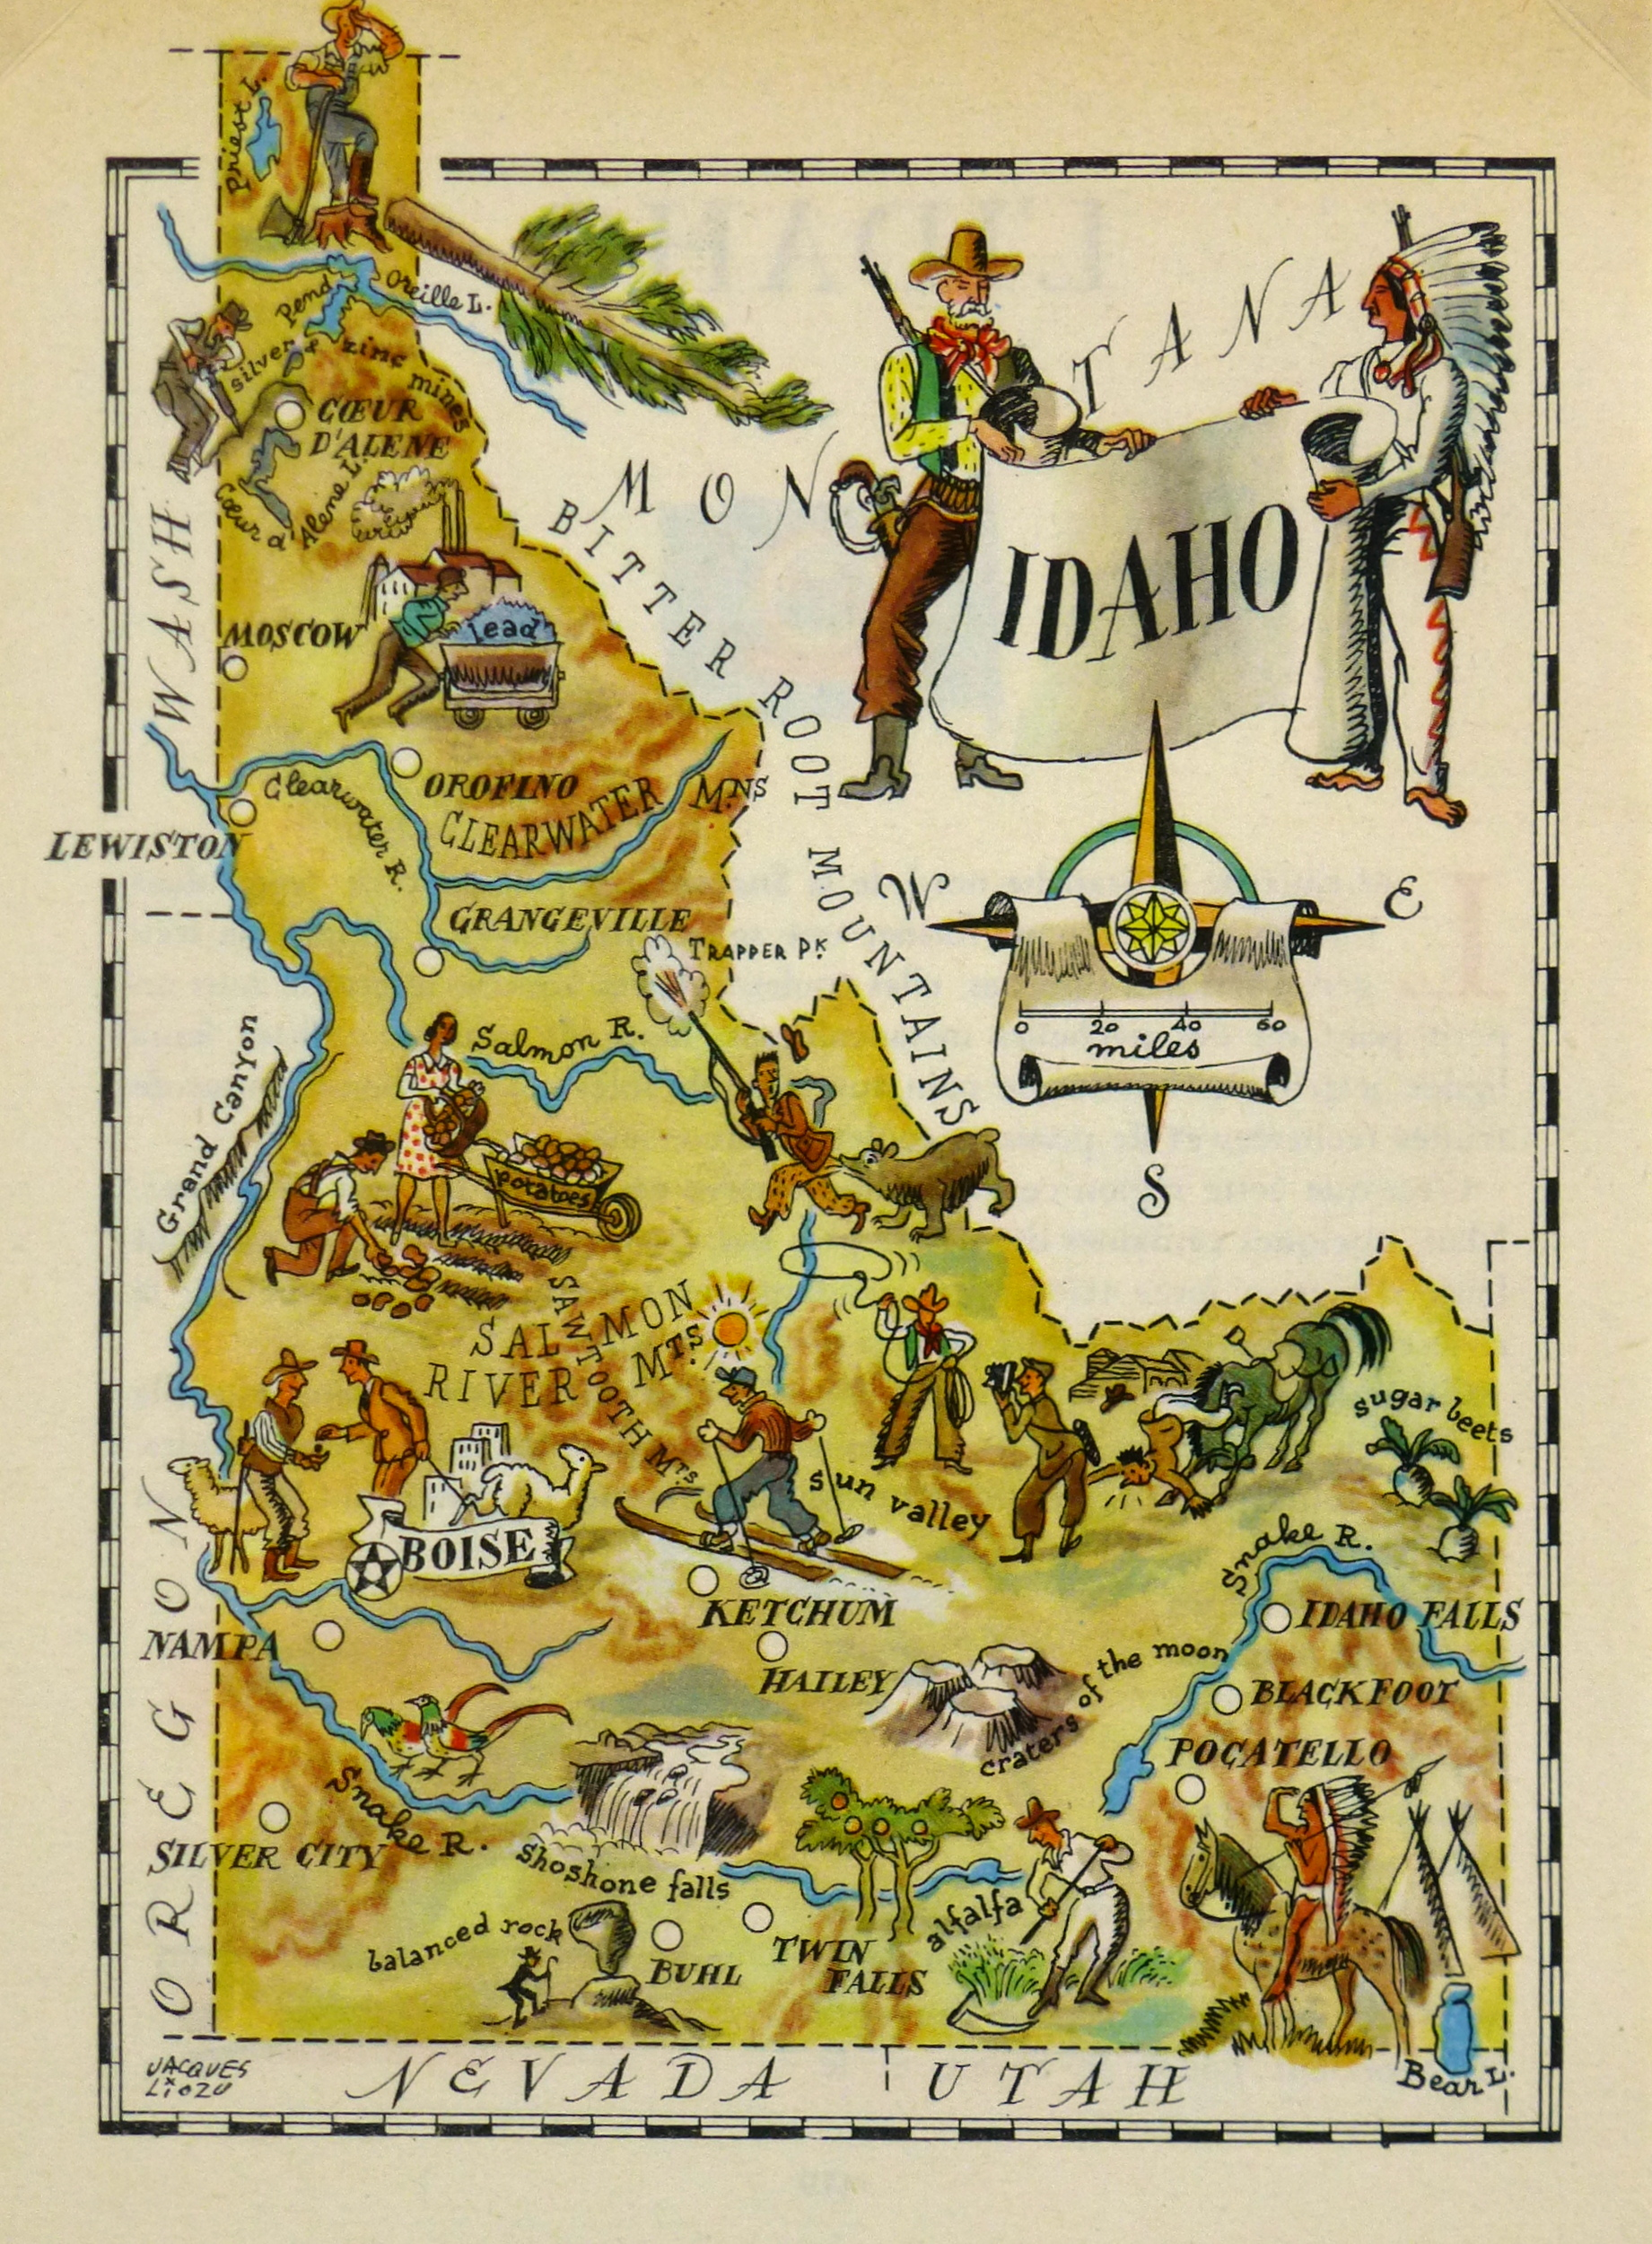 Pictorial Map - Idaho, 1946-main-6244K